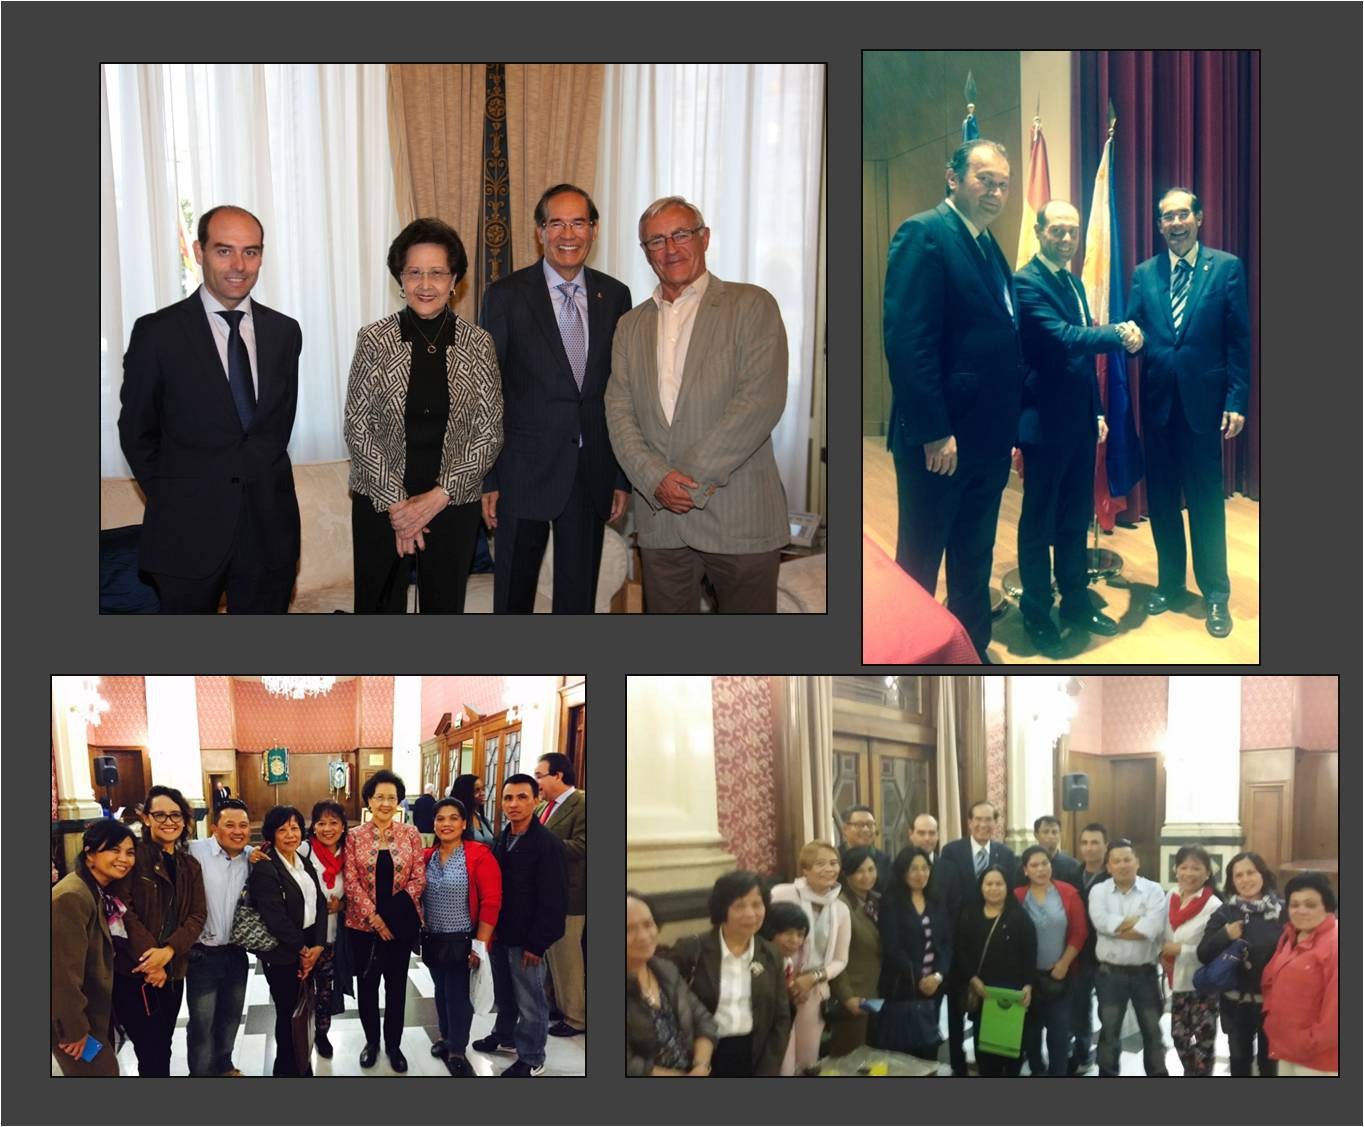 Clockwise: Consul, a.h., Manuel Carrión, Mrs. Isabelita T. Salinas, Ambassador Carlos C. Salinas, Valencia Mayor Joan Ribó Canut; Vice President of Ateneo Mercantil de Valencia Enrique Mora, Cónsul Carrión and Ambassador Salinas; Amb. and Mrs. Salinas with members of the Filipino Community in the region of Valencia.